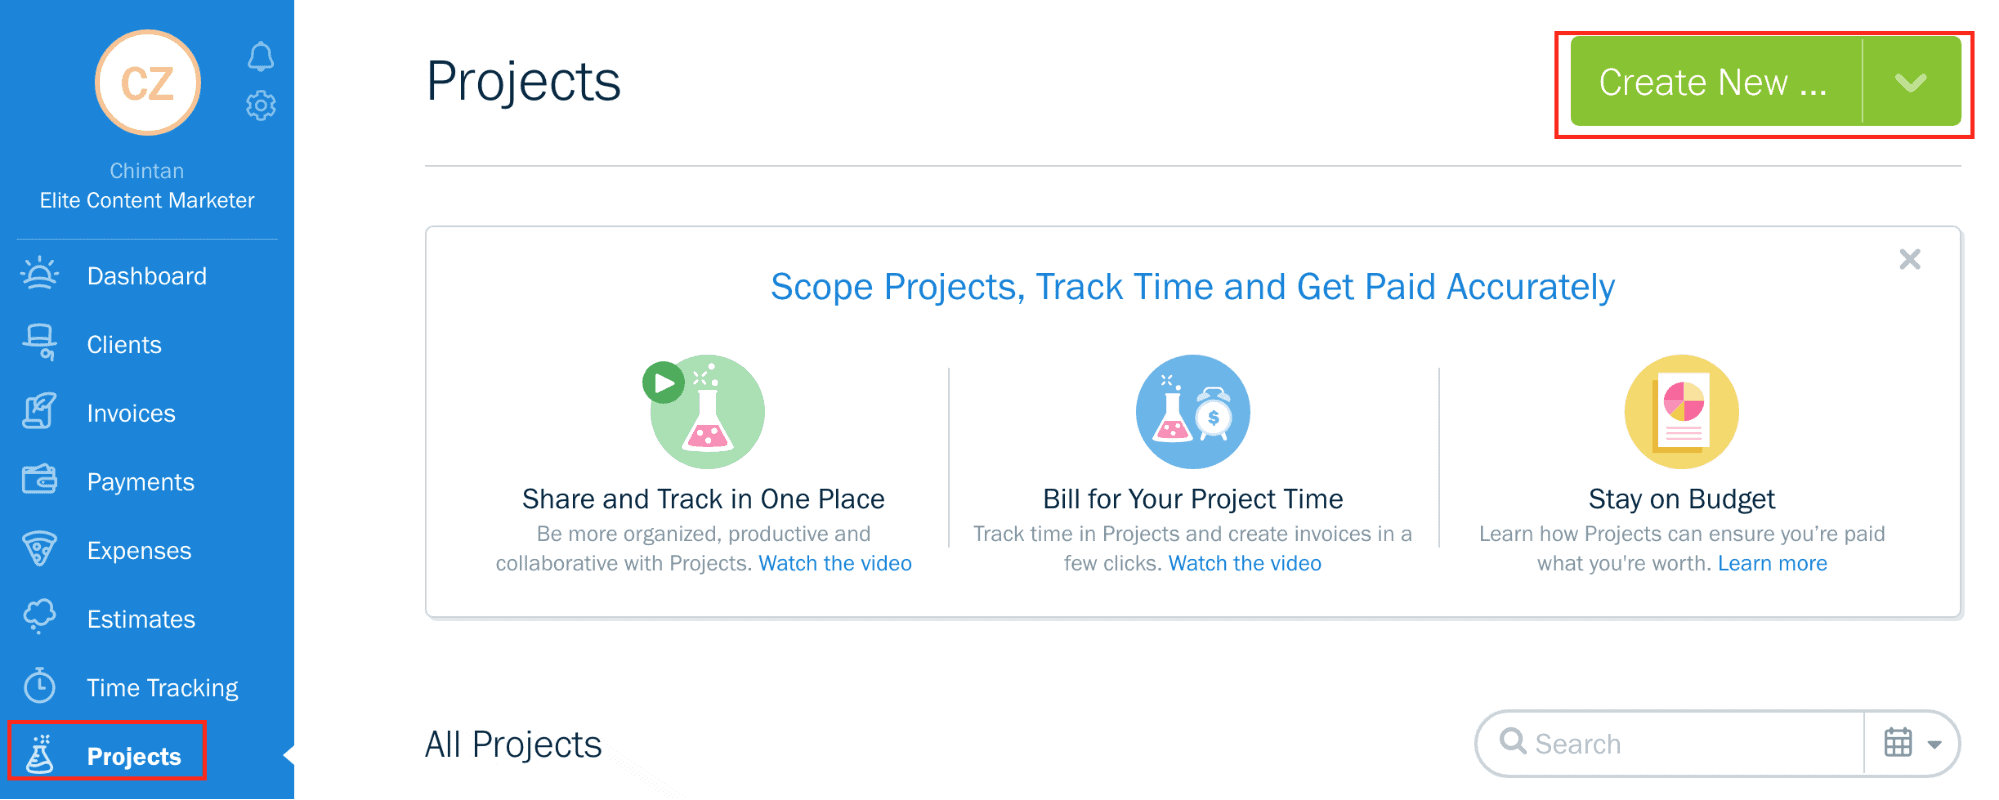 The Projects banner on Freshbooks